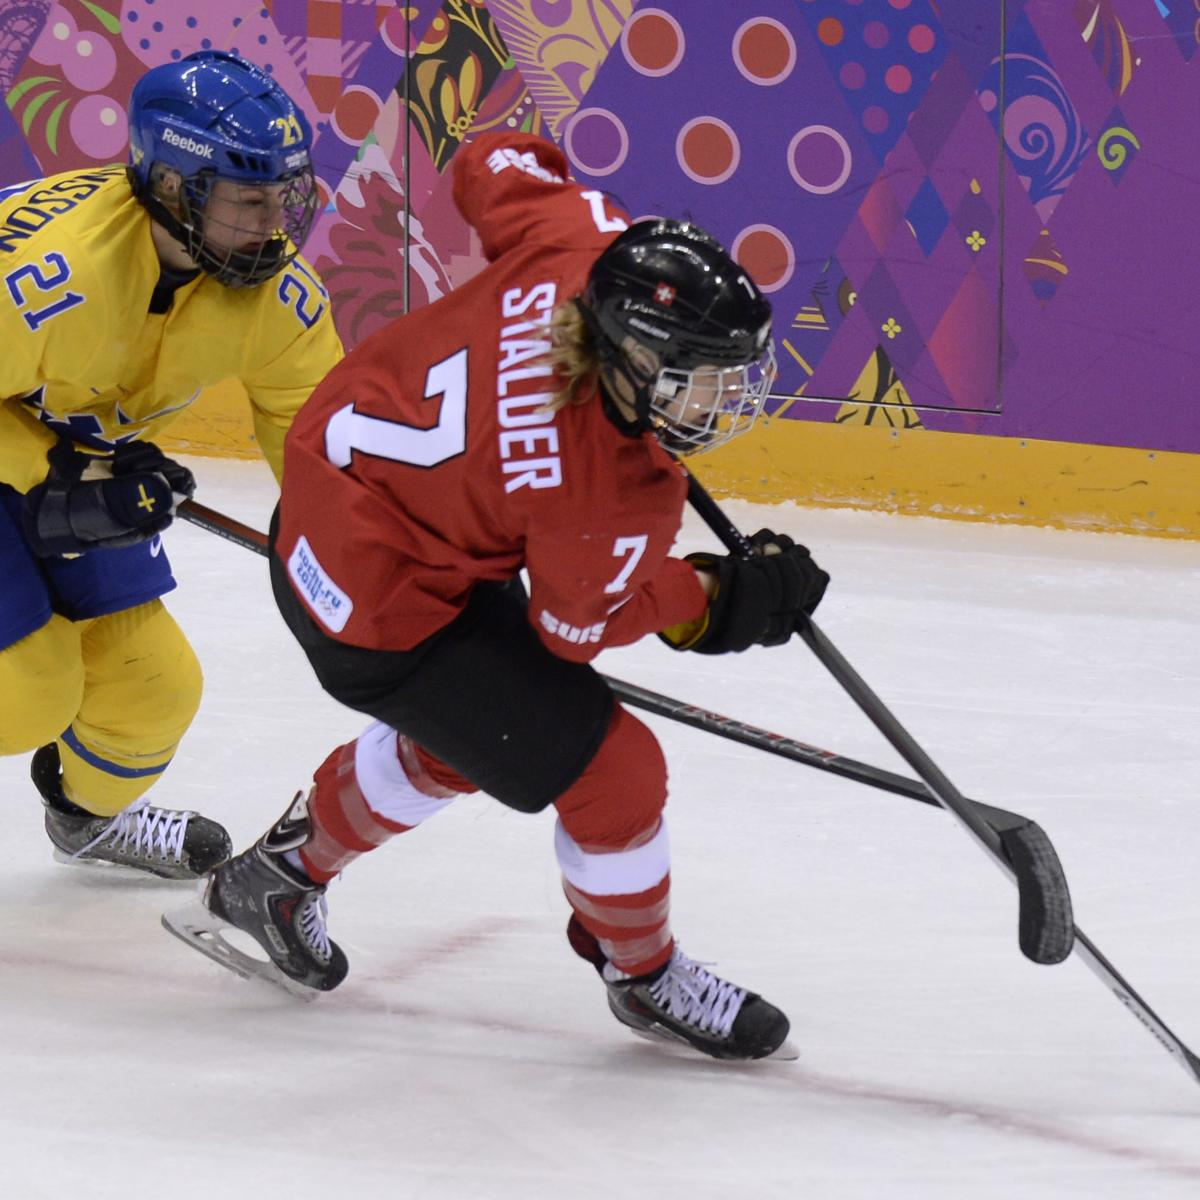 Olympic Hockey 2018 Schedule, Live Stream For Saturday's